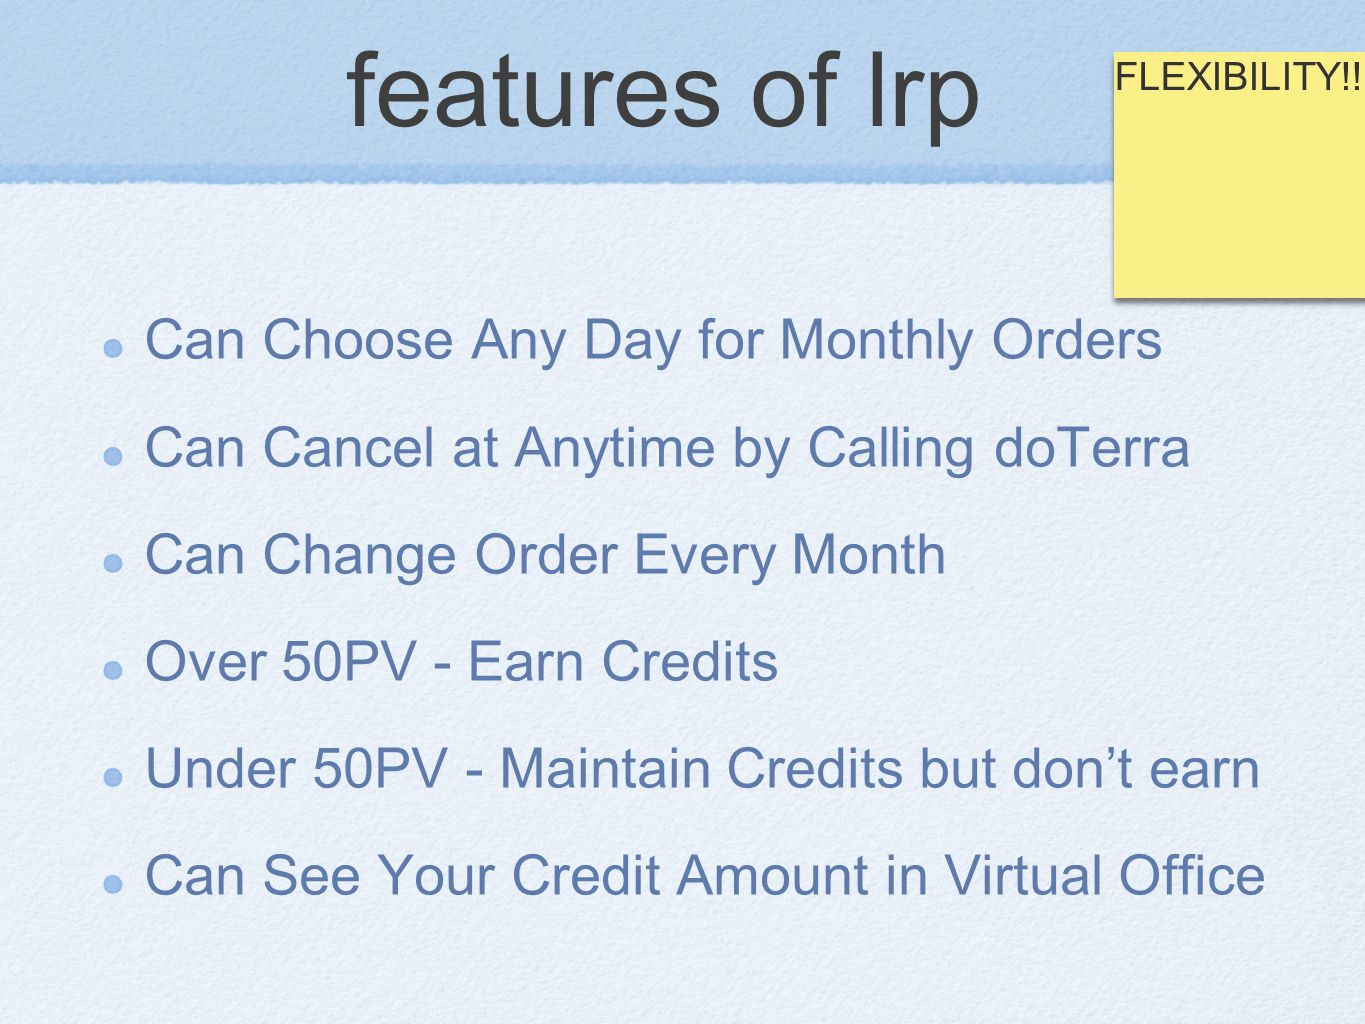 features of lrp Can Choose Any Day for Monthly Orders